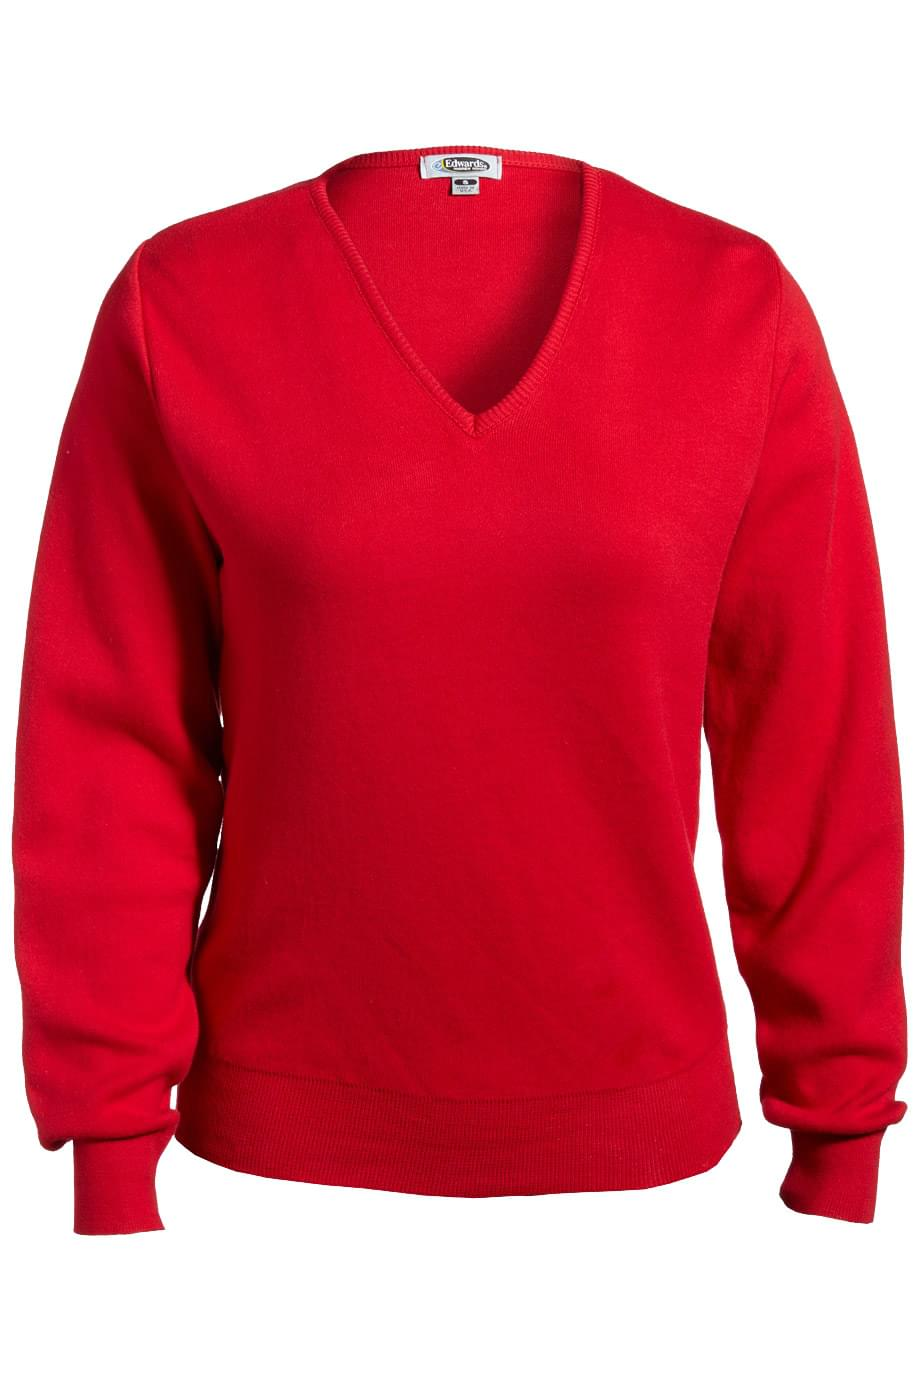 ALL-COTTON SWEATER